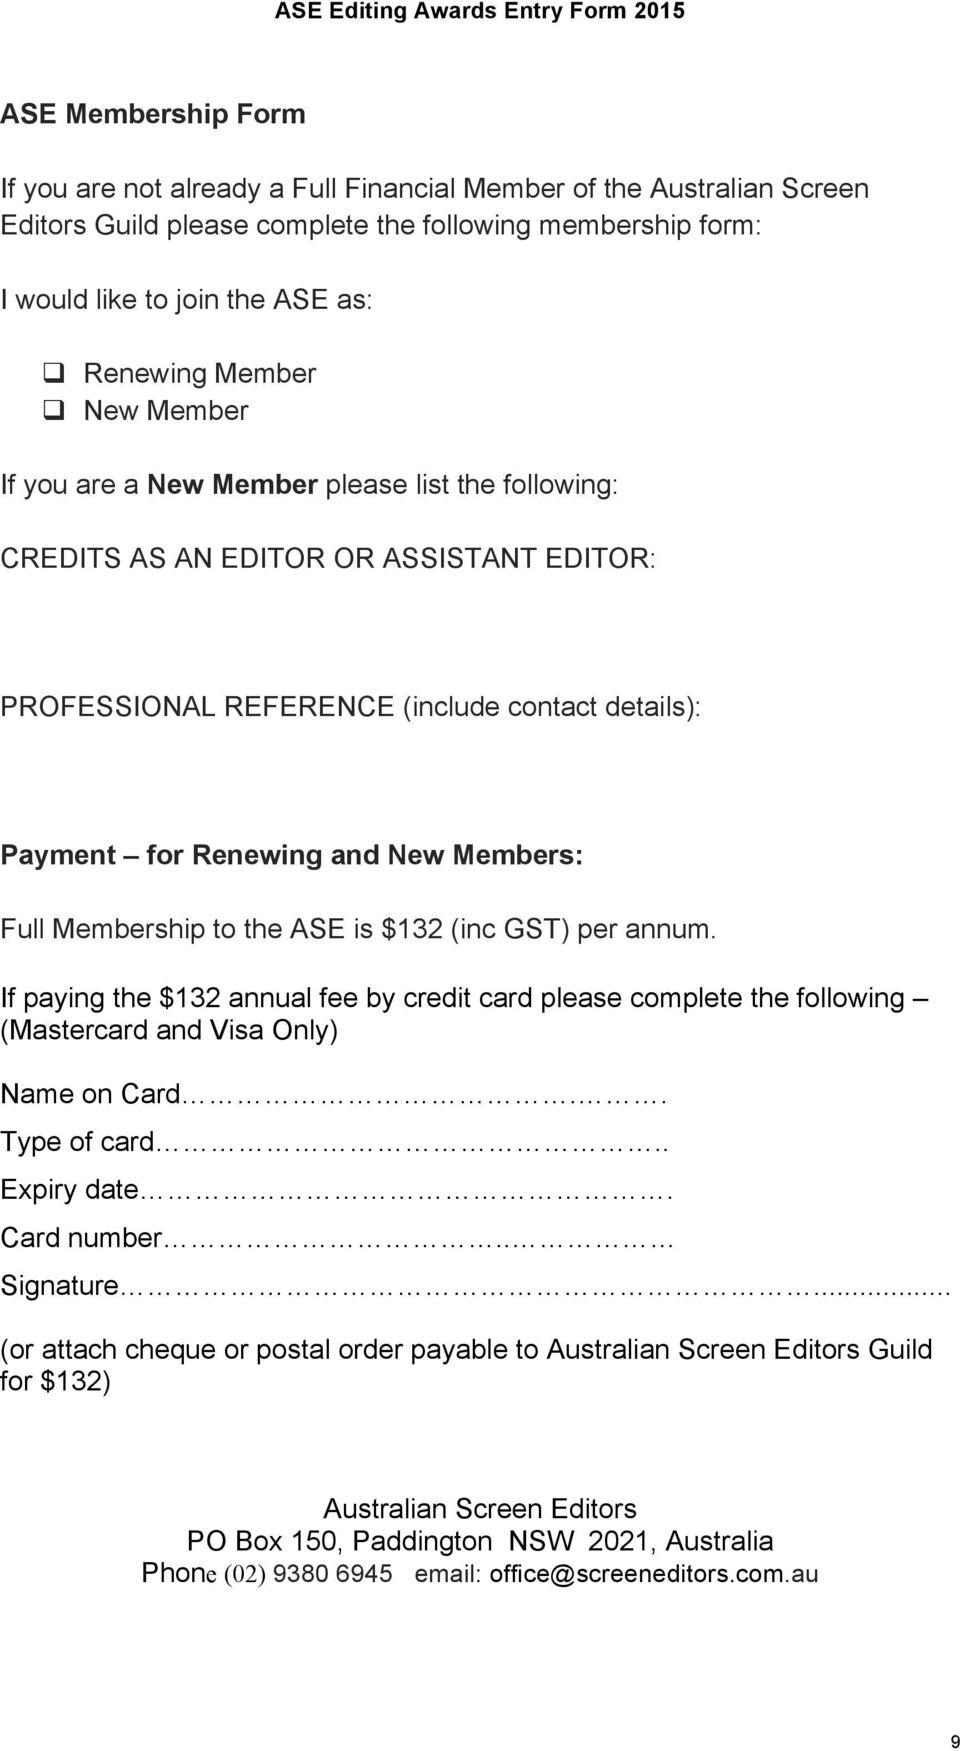 Members: Full Membership to the ASE is $132 (inc GST) per annum. If paying the $132 annual fee by credit card please complete the following (Mastercard and Visa Only) Name on Card.. Type of card.